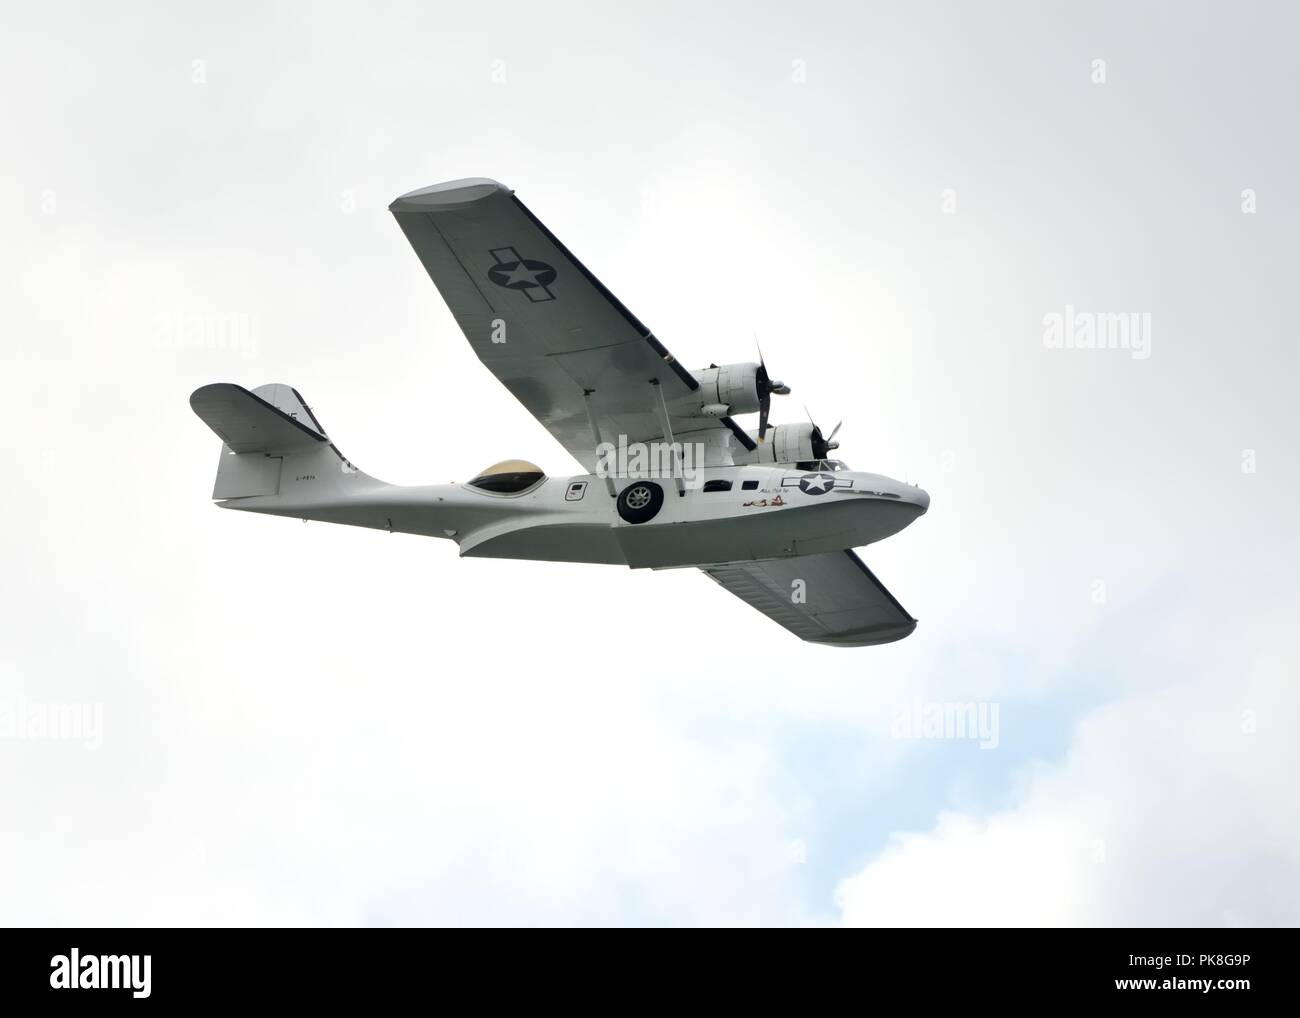 Consolidated PBY-5A Catalina in flight at the Scottish International Airshow in Ayr, Scotland, UK - Stock Image